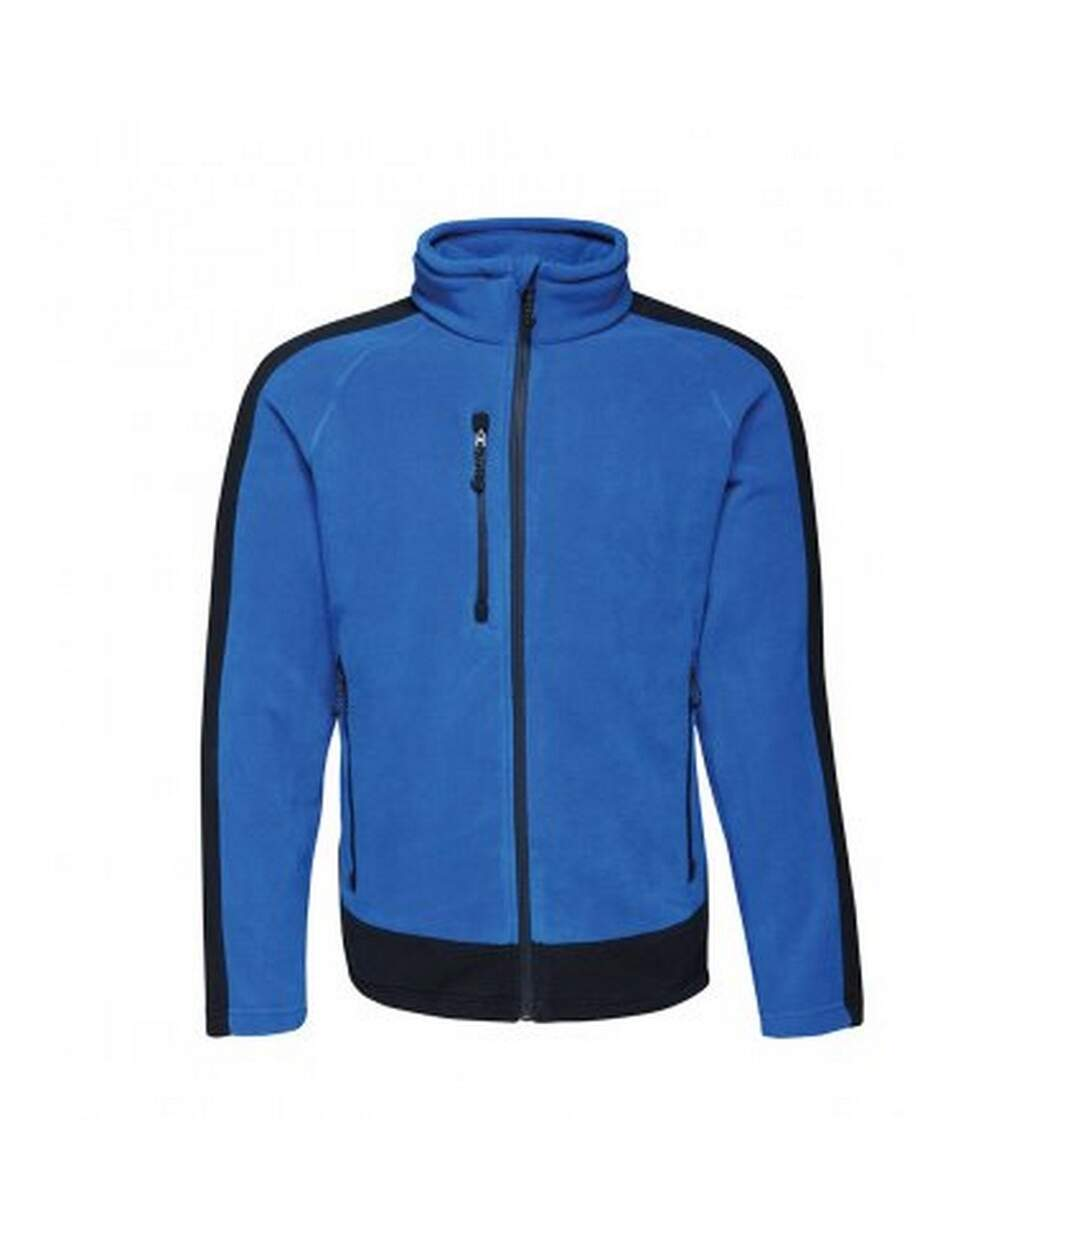 Regatta Mens Contrast 300 Fleece Jacket (New Royal/Navy) - UTPC3319